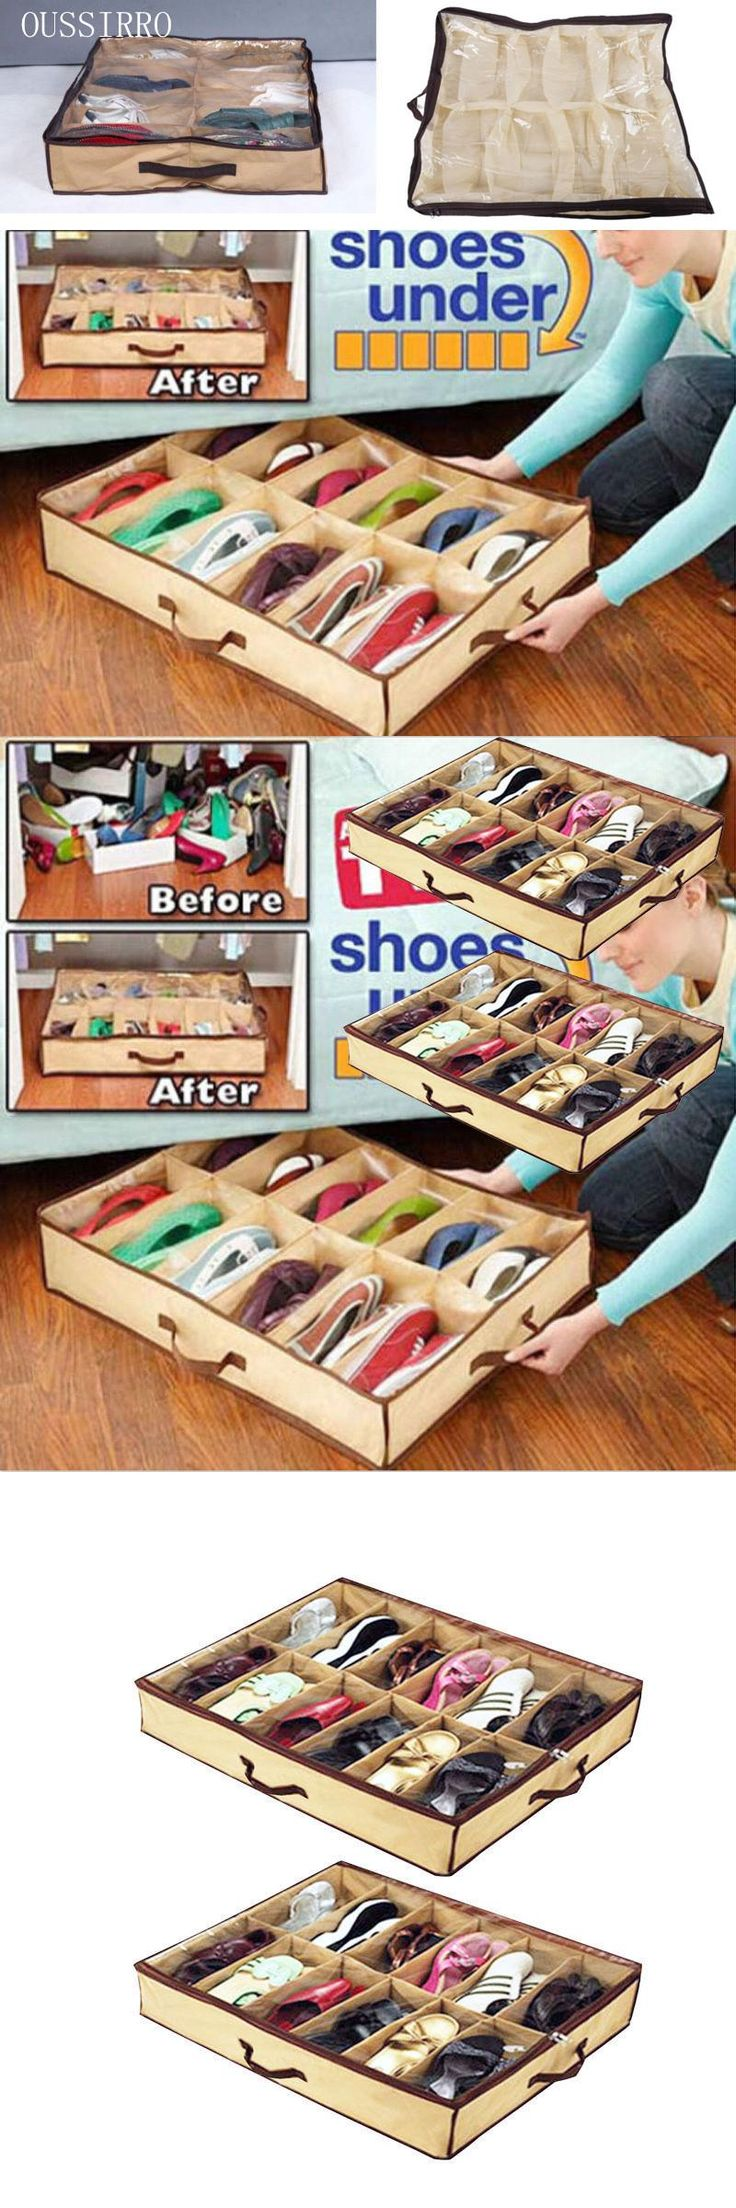 [Visit to Buy]  OUSSIRRO New 2016 Shoe Box 12 Pocket Under Bed Foldable Shoe Container Storage Organizer Holder #Advertisement